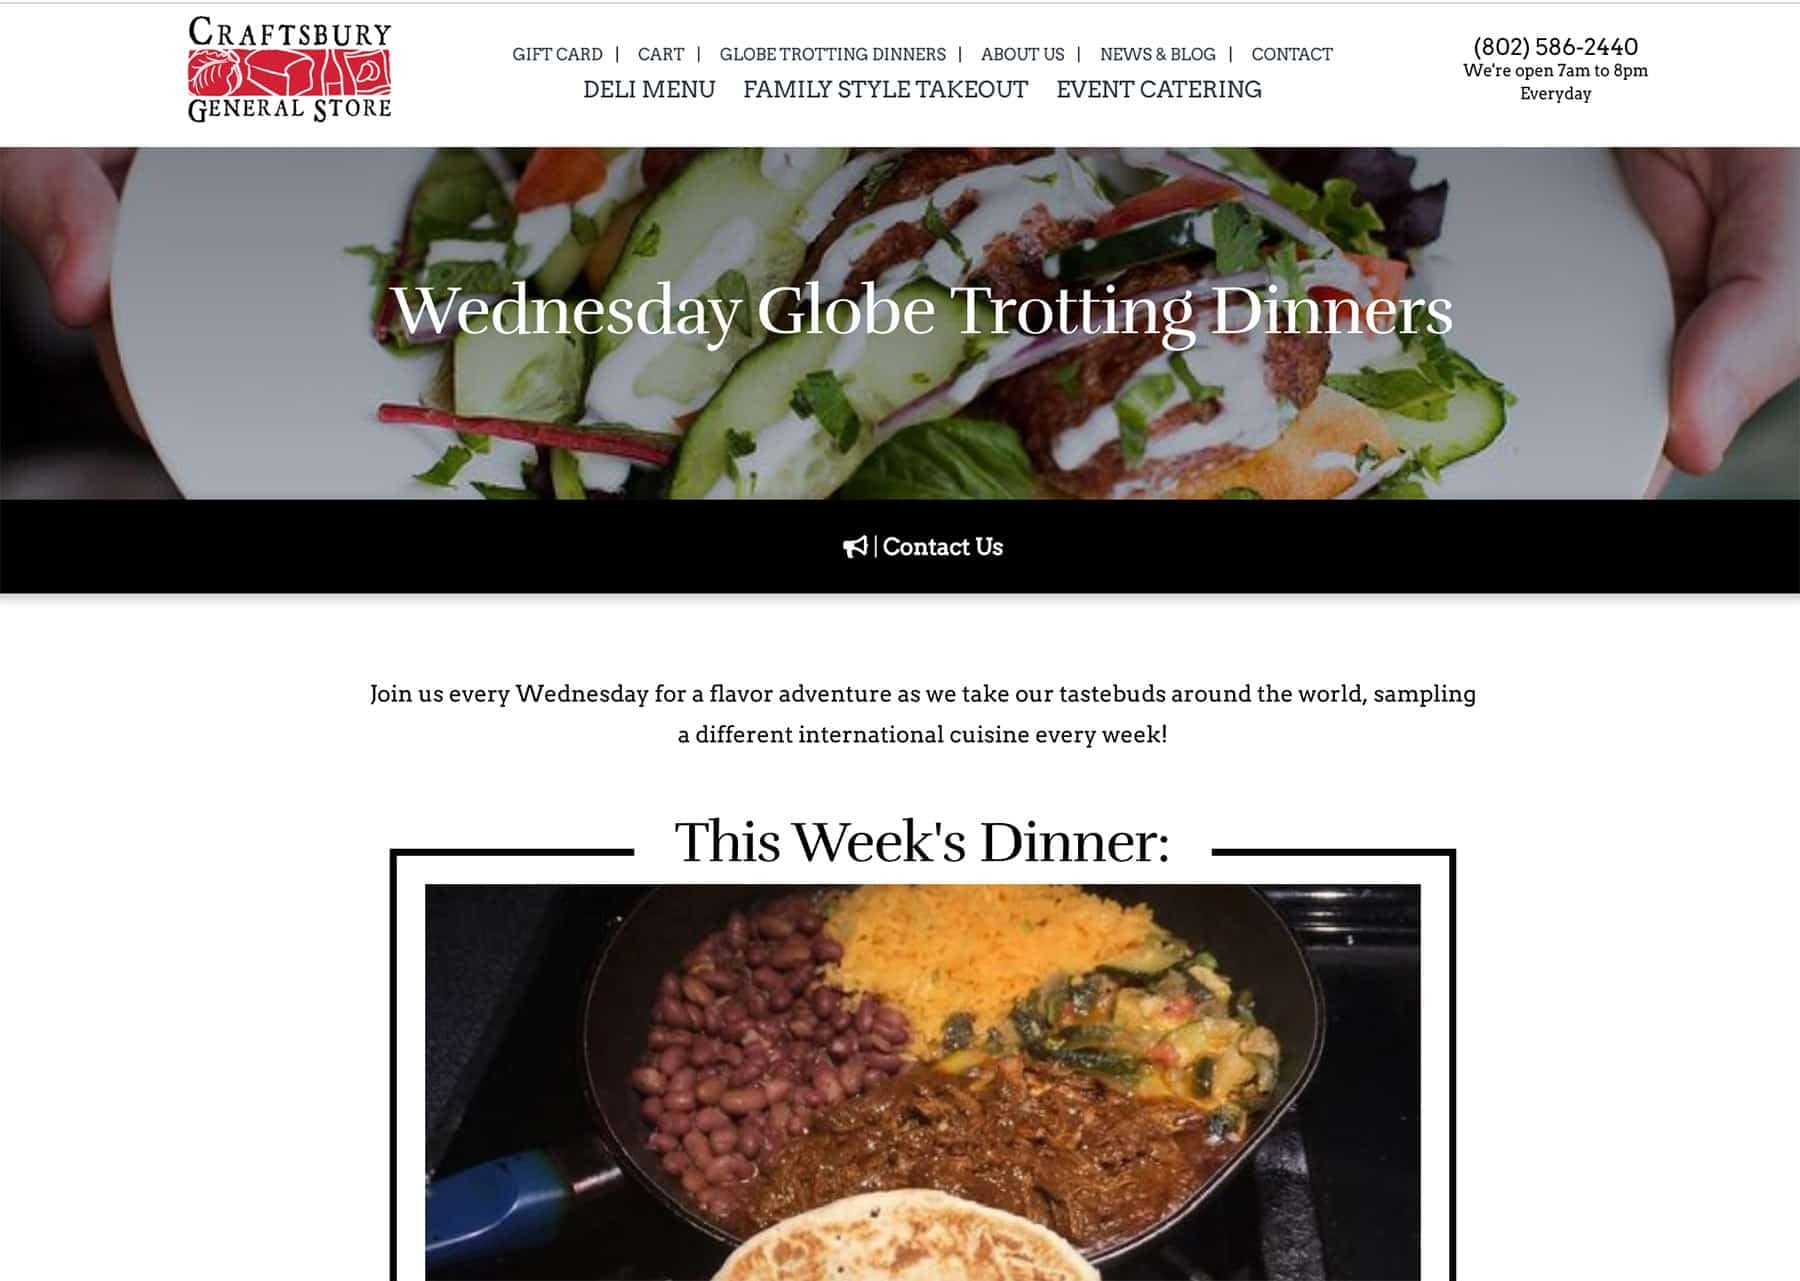 Screenshot of the Craftsbury General Store Wednesday Globe Trotting Dinners Part 1